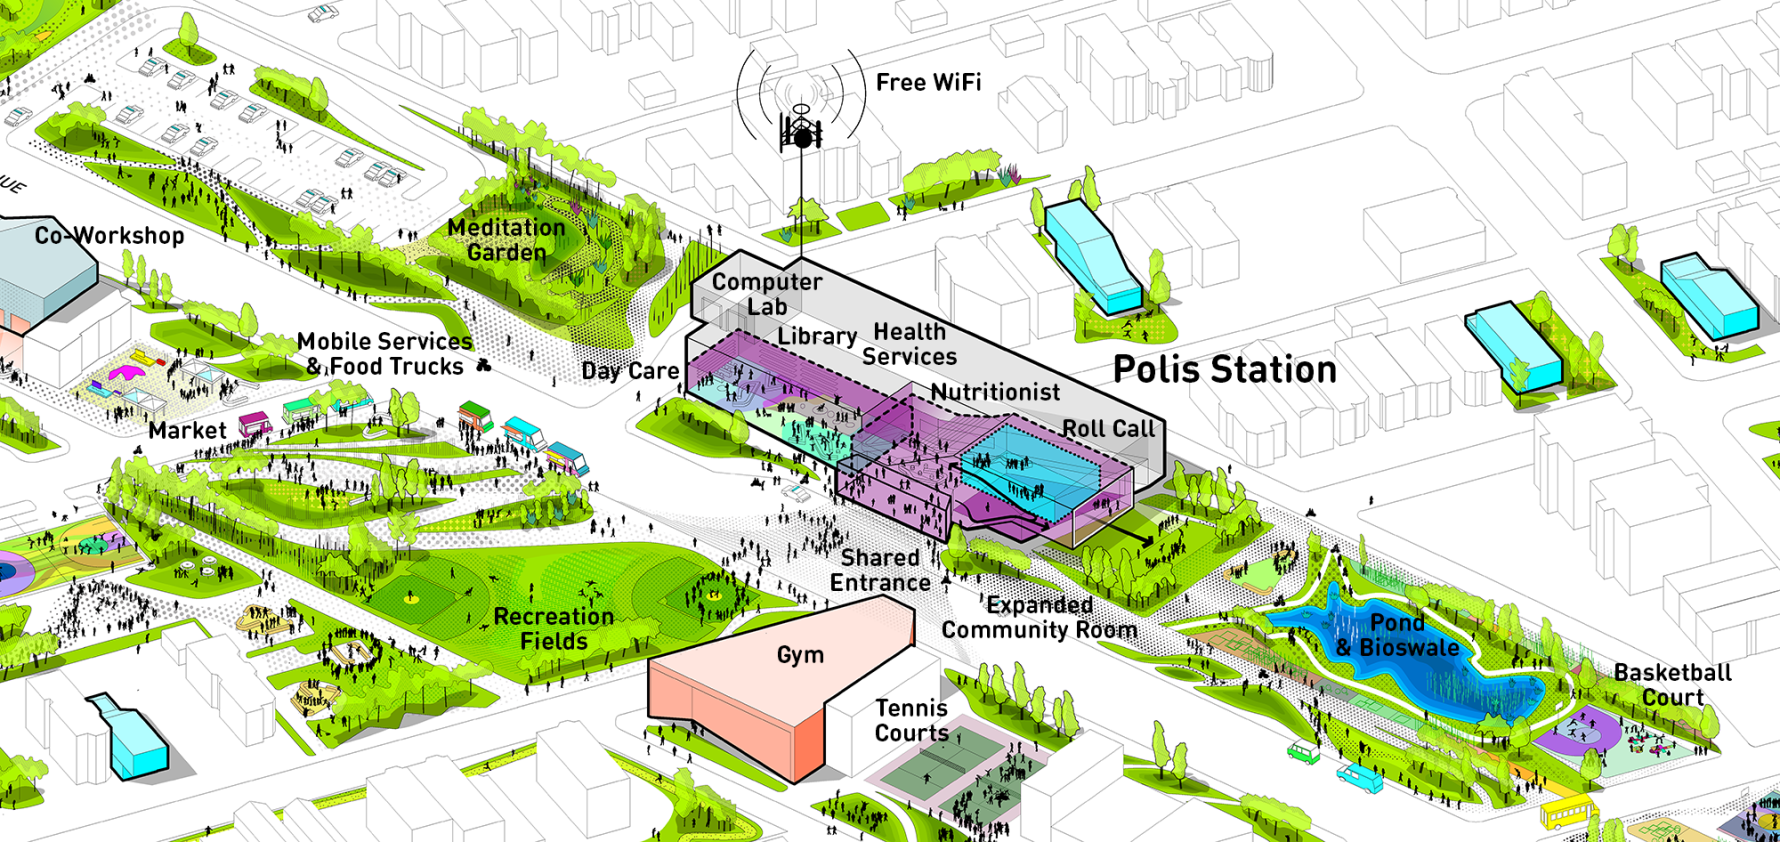 Polis Station - Chicago map safety